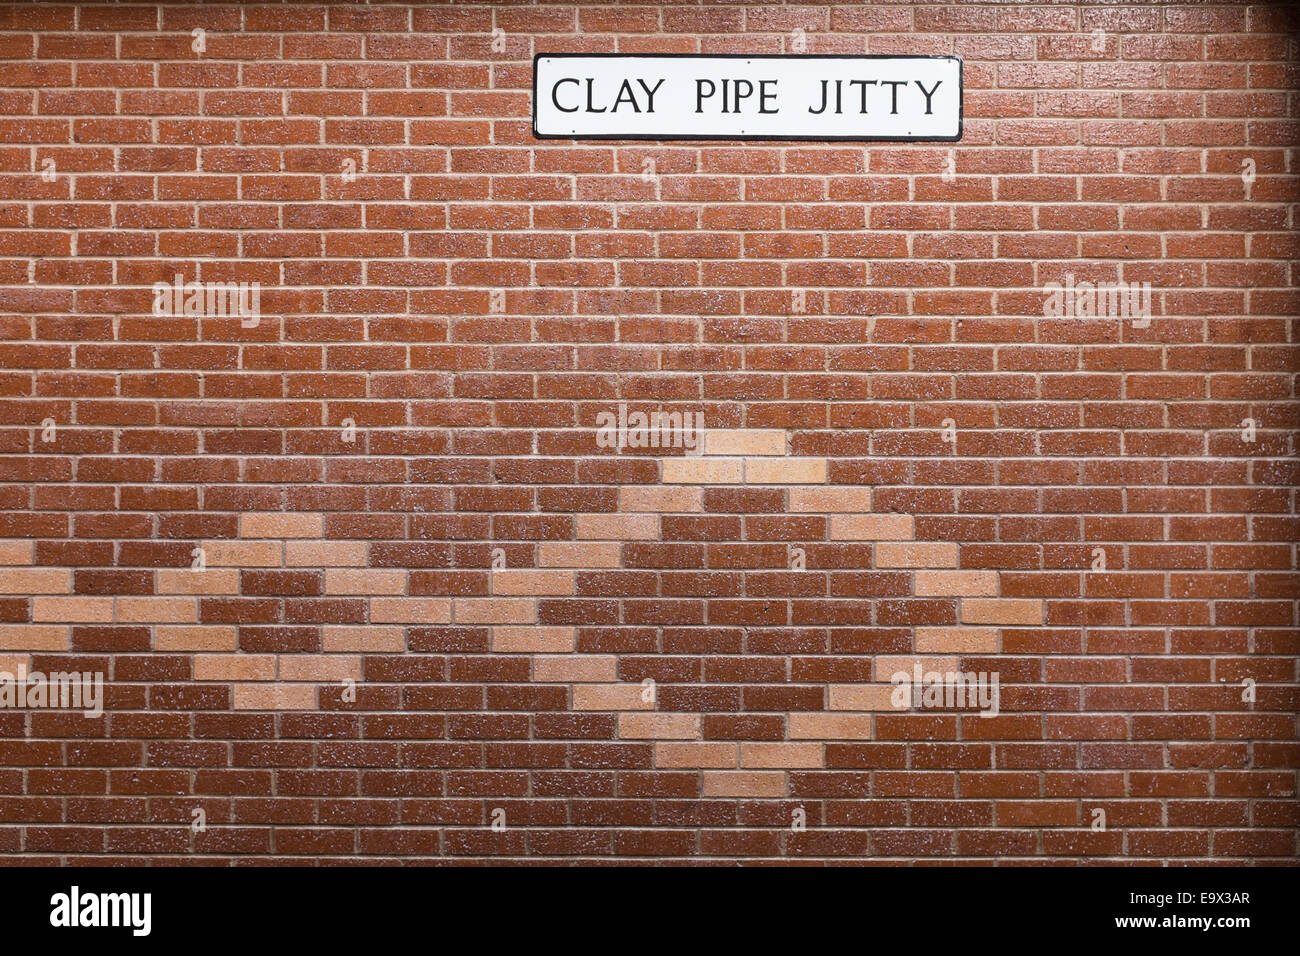 Brick Wall With Decorative Brick Patterned Inserts And A Strange Street  Name Sign U0027clay Pipe Jittyu0027.